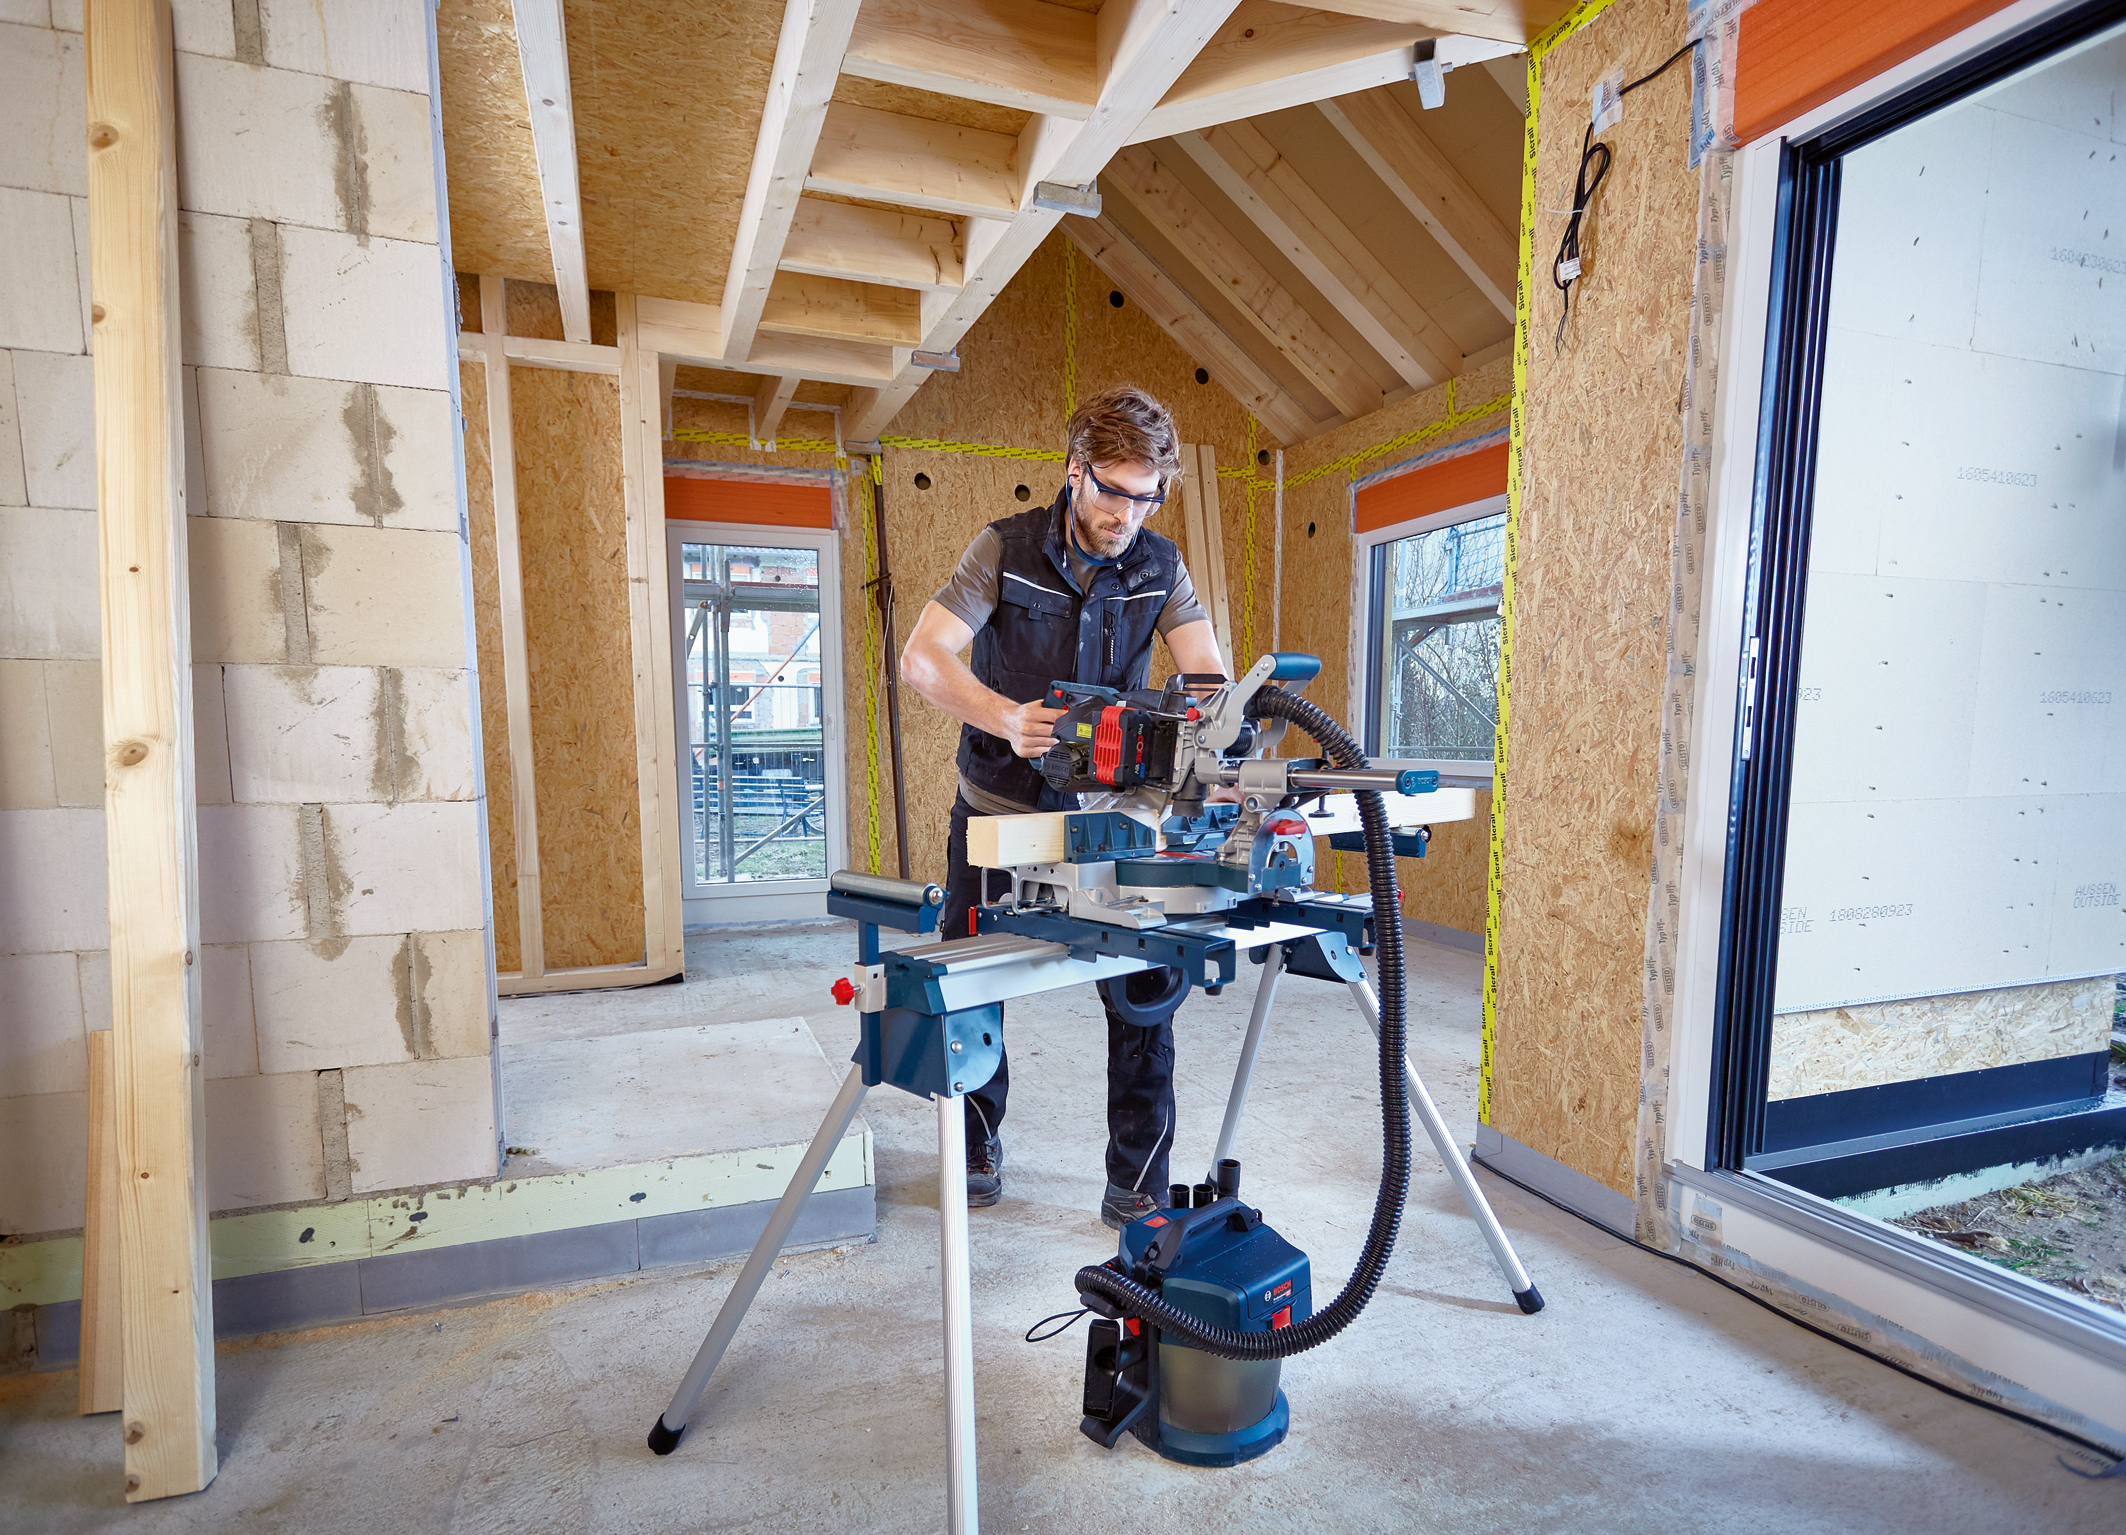 A wider range of applications than any other with 216 millimeter blade: Cordless GCM 18V-216 Professional sliding miter saw from Bosch for professionals